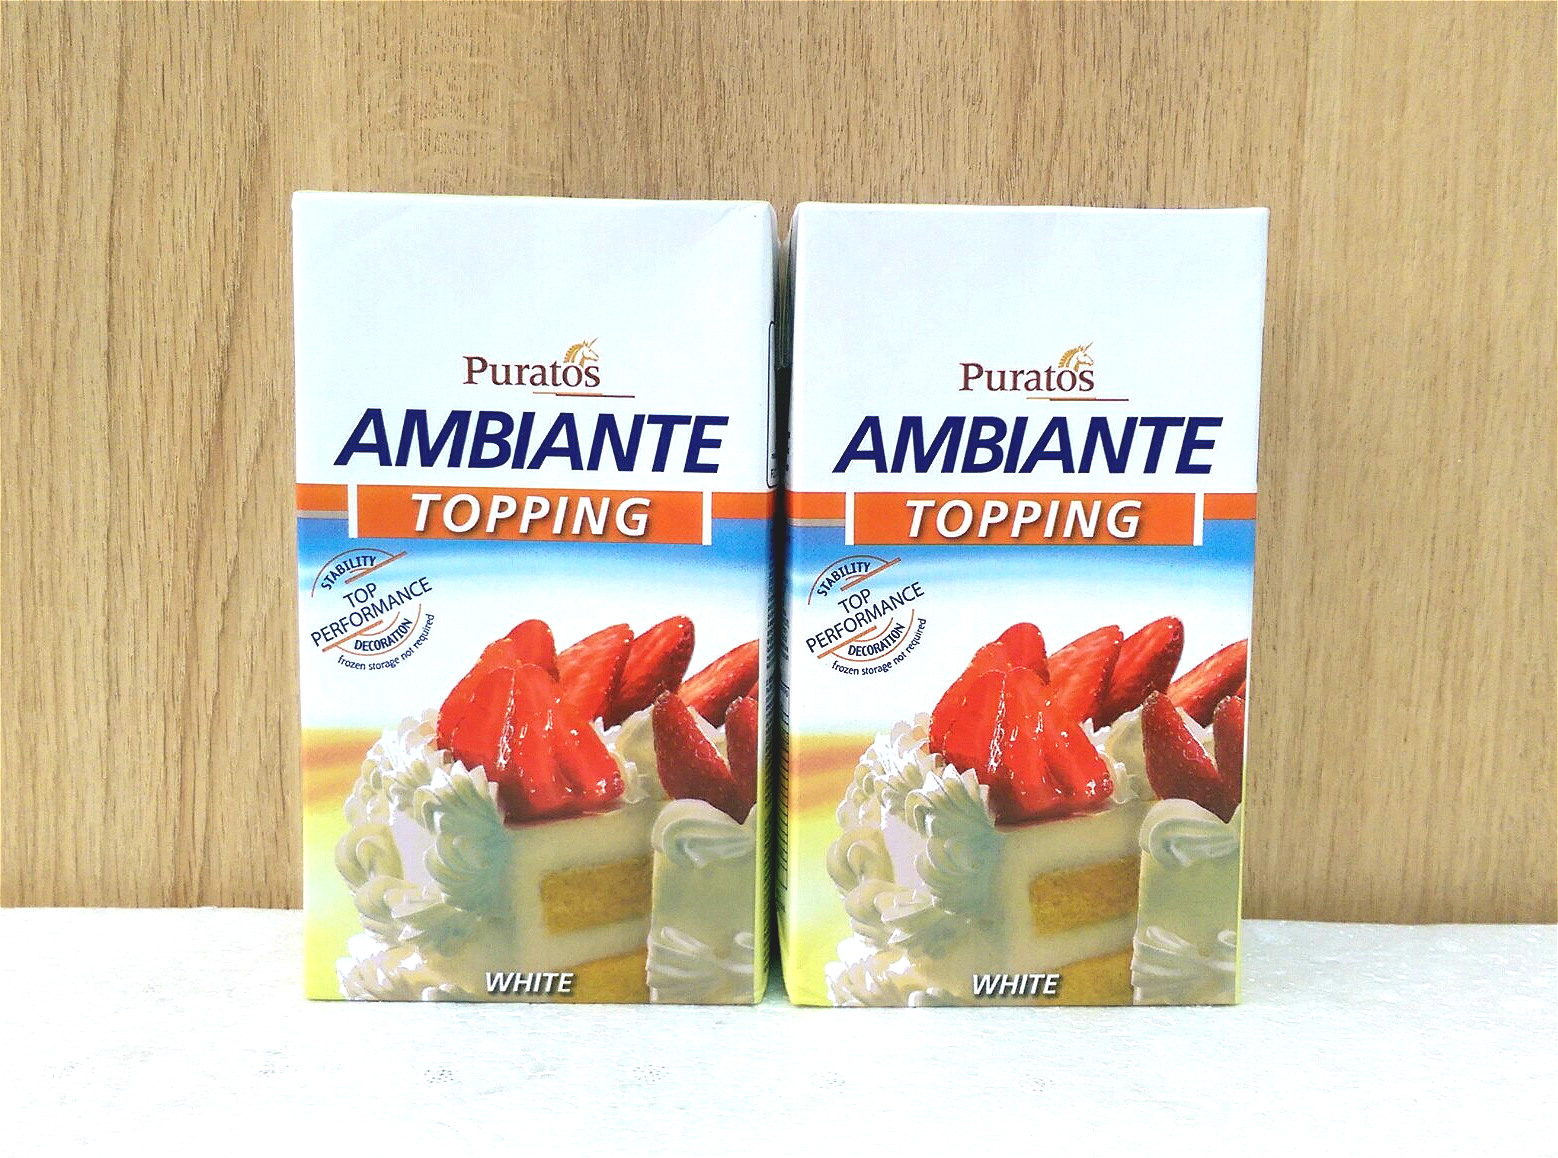 Ambiante Topping